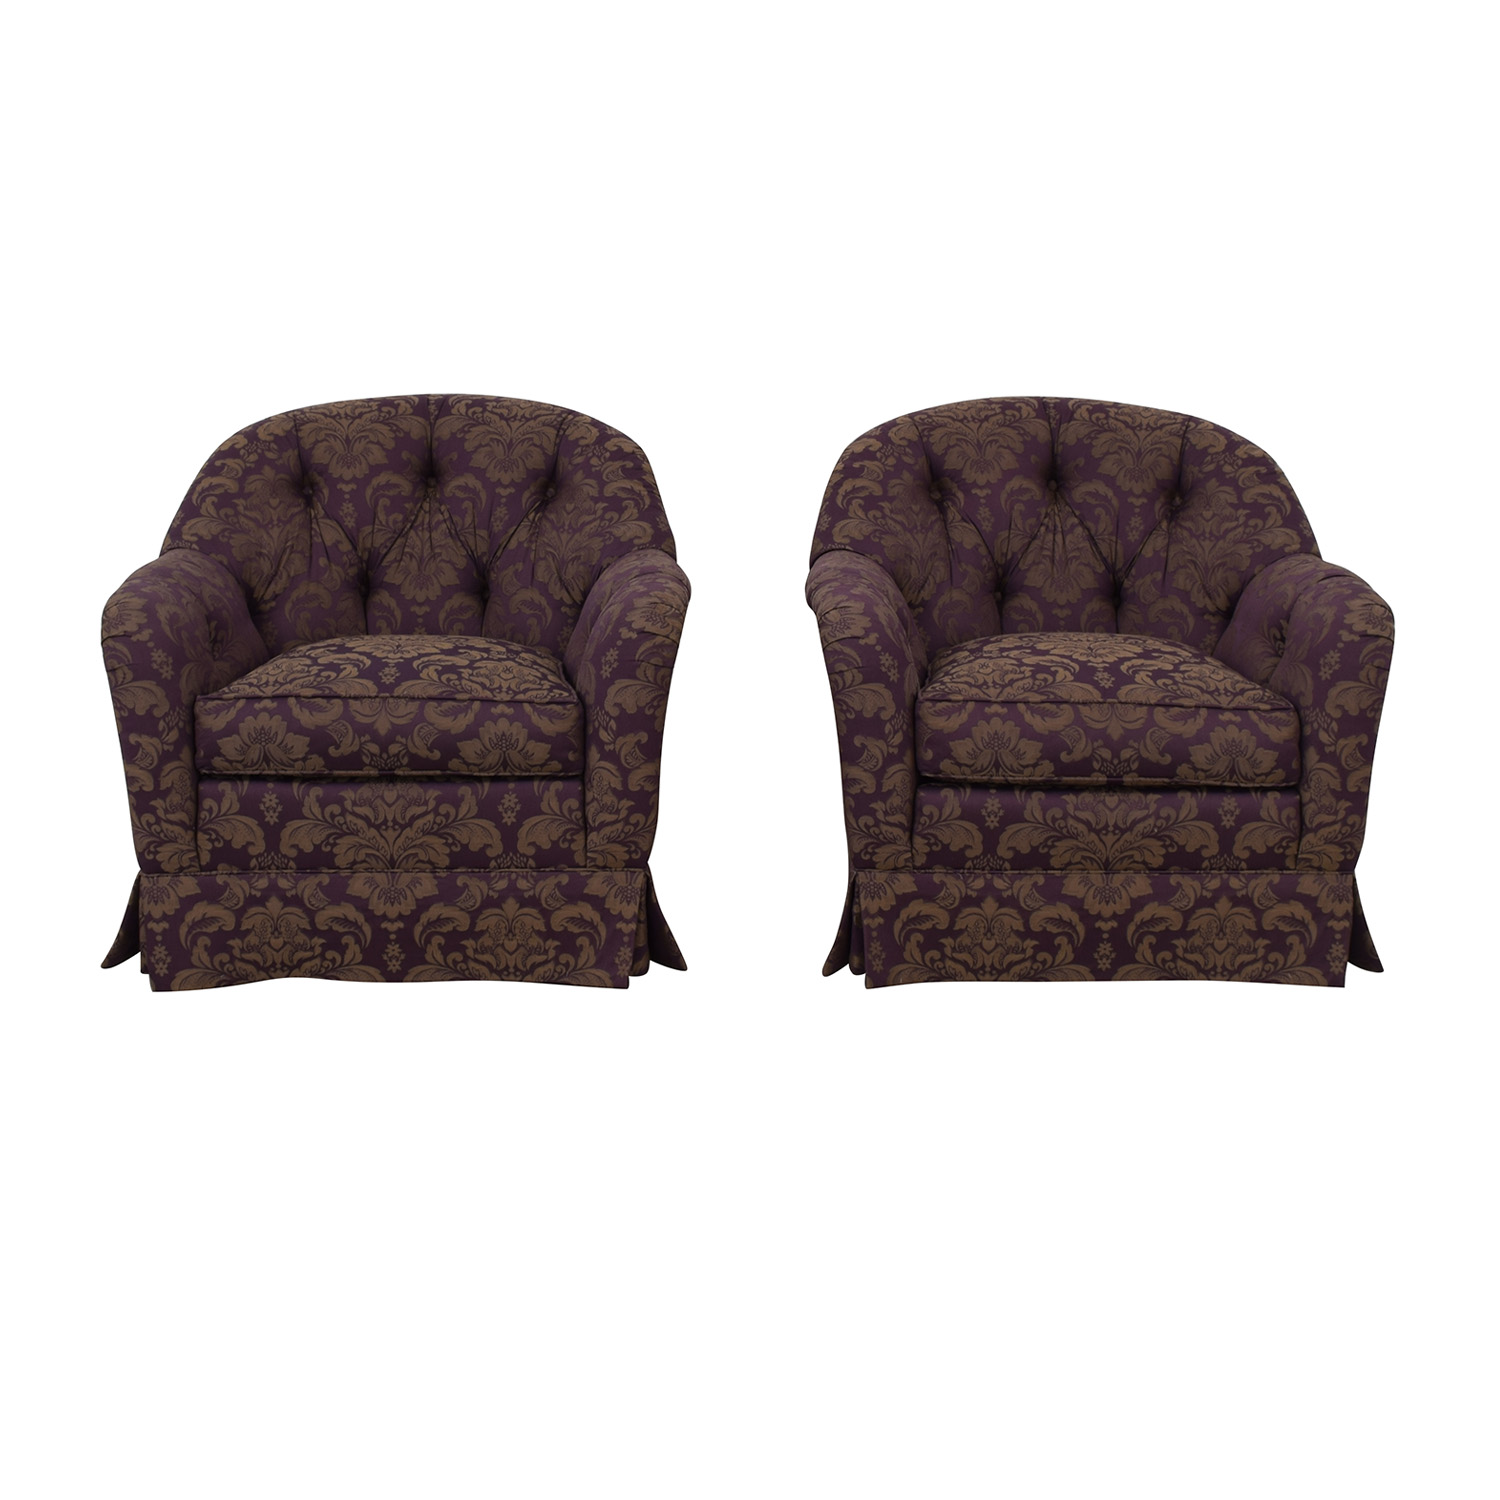 shop Patterned Swivel Chairs